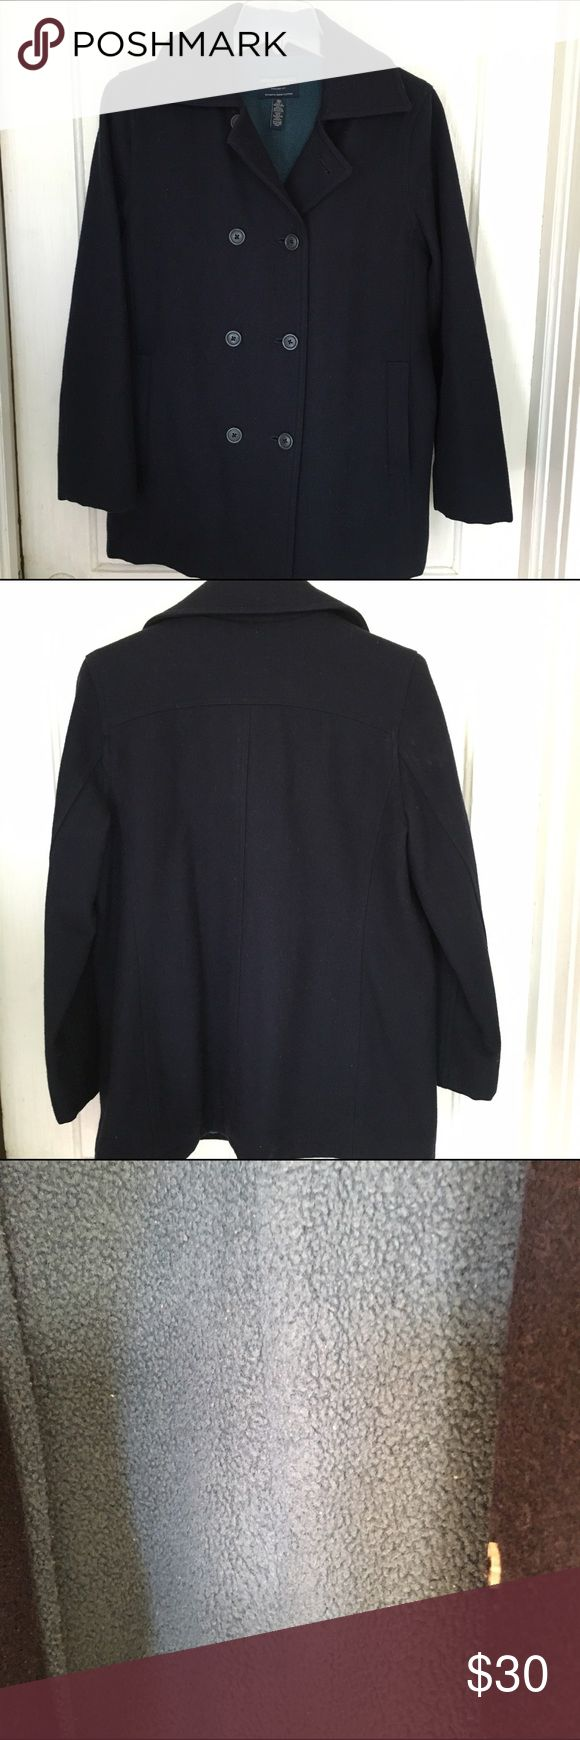 AE Outfitters Navy Wool Blend Pea Coat Wool blend coat with warm fleece lining & 2 front pockets. No defects, but has been worn & has some lint deposits. Also has been in storage, so may have an odor. Recommend cleaning before wearing. American Eagle Outfitters Jackets & Coats Pea Coats